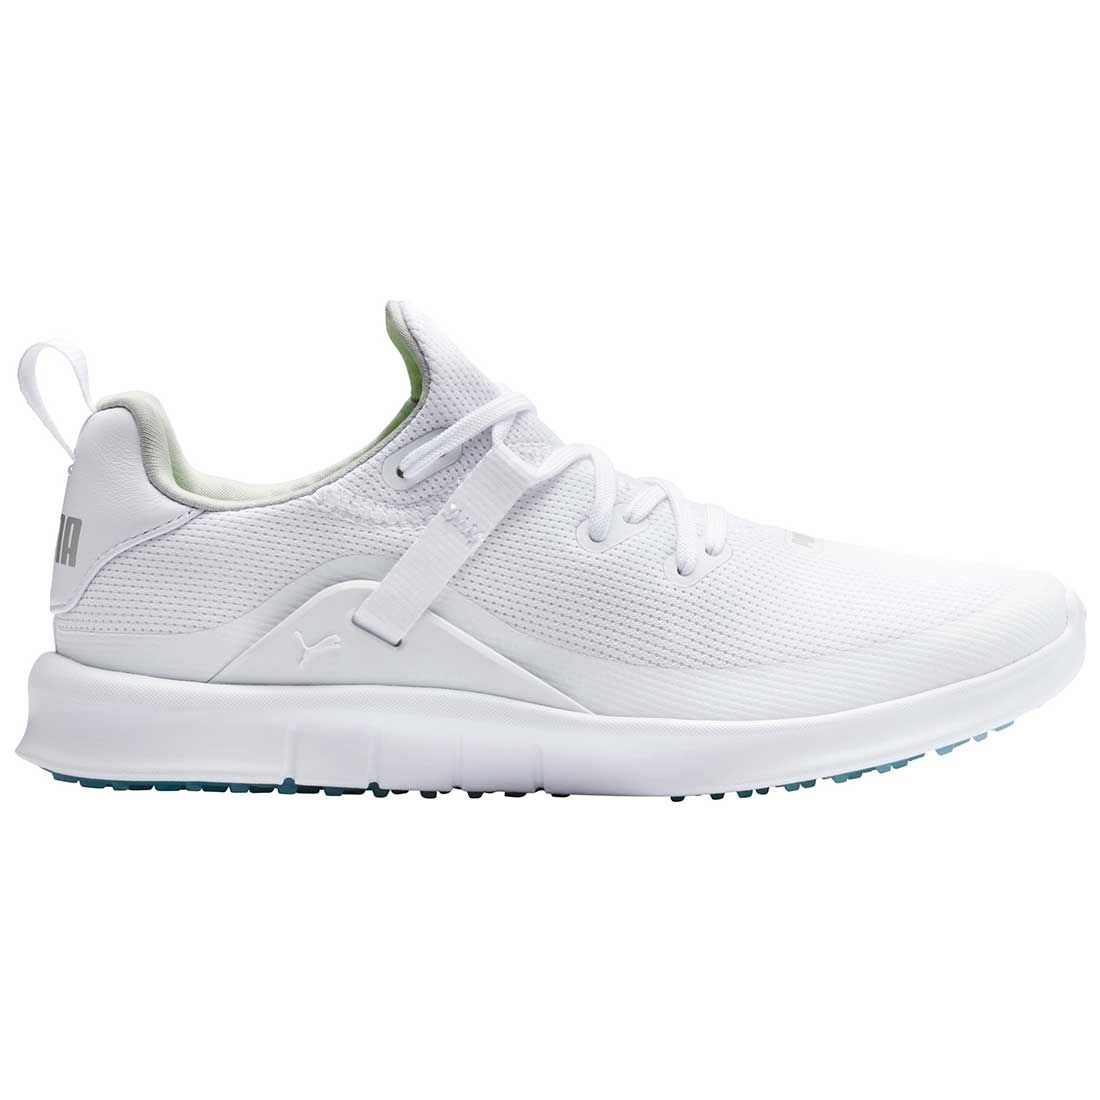 Buy Puma Women S Laguna Fusion Sport Golf Shoes White Golf Discount